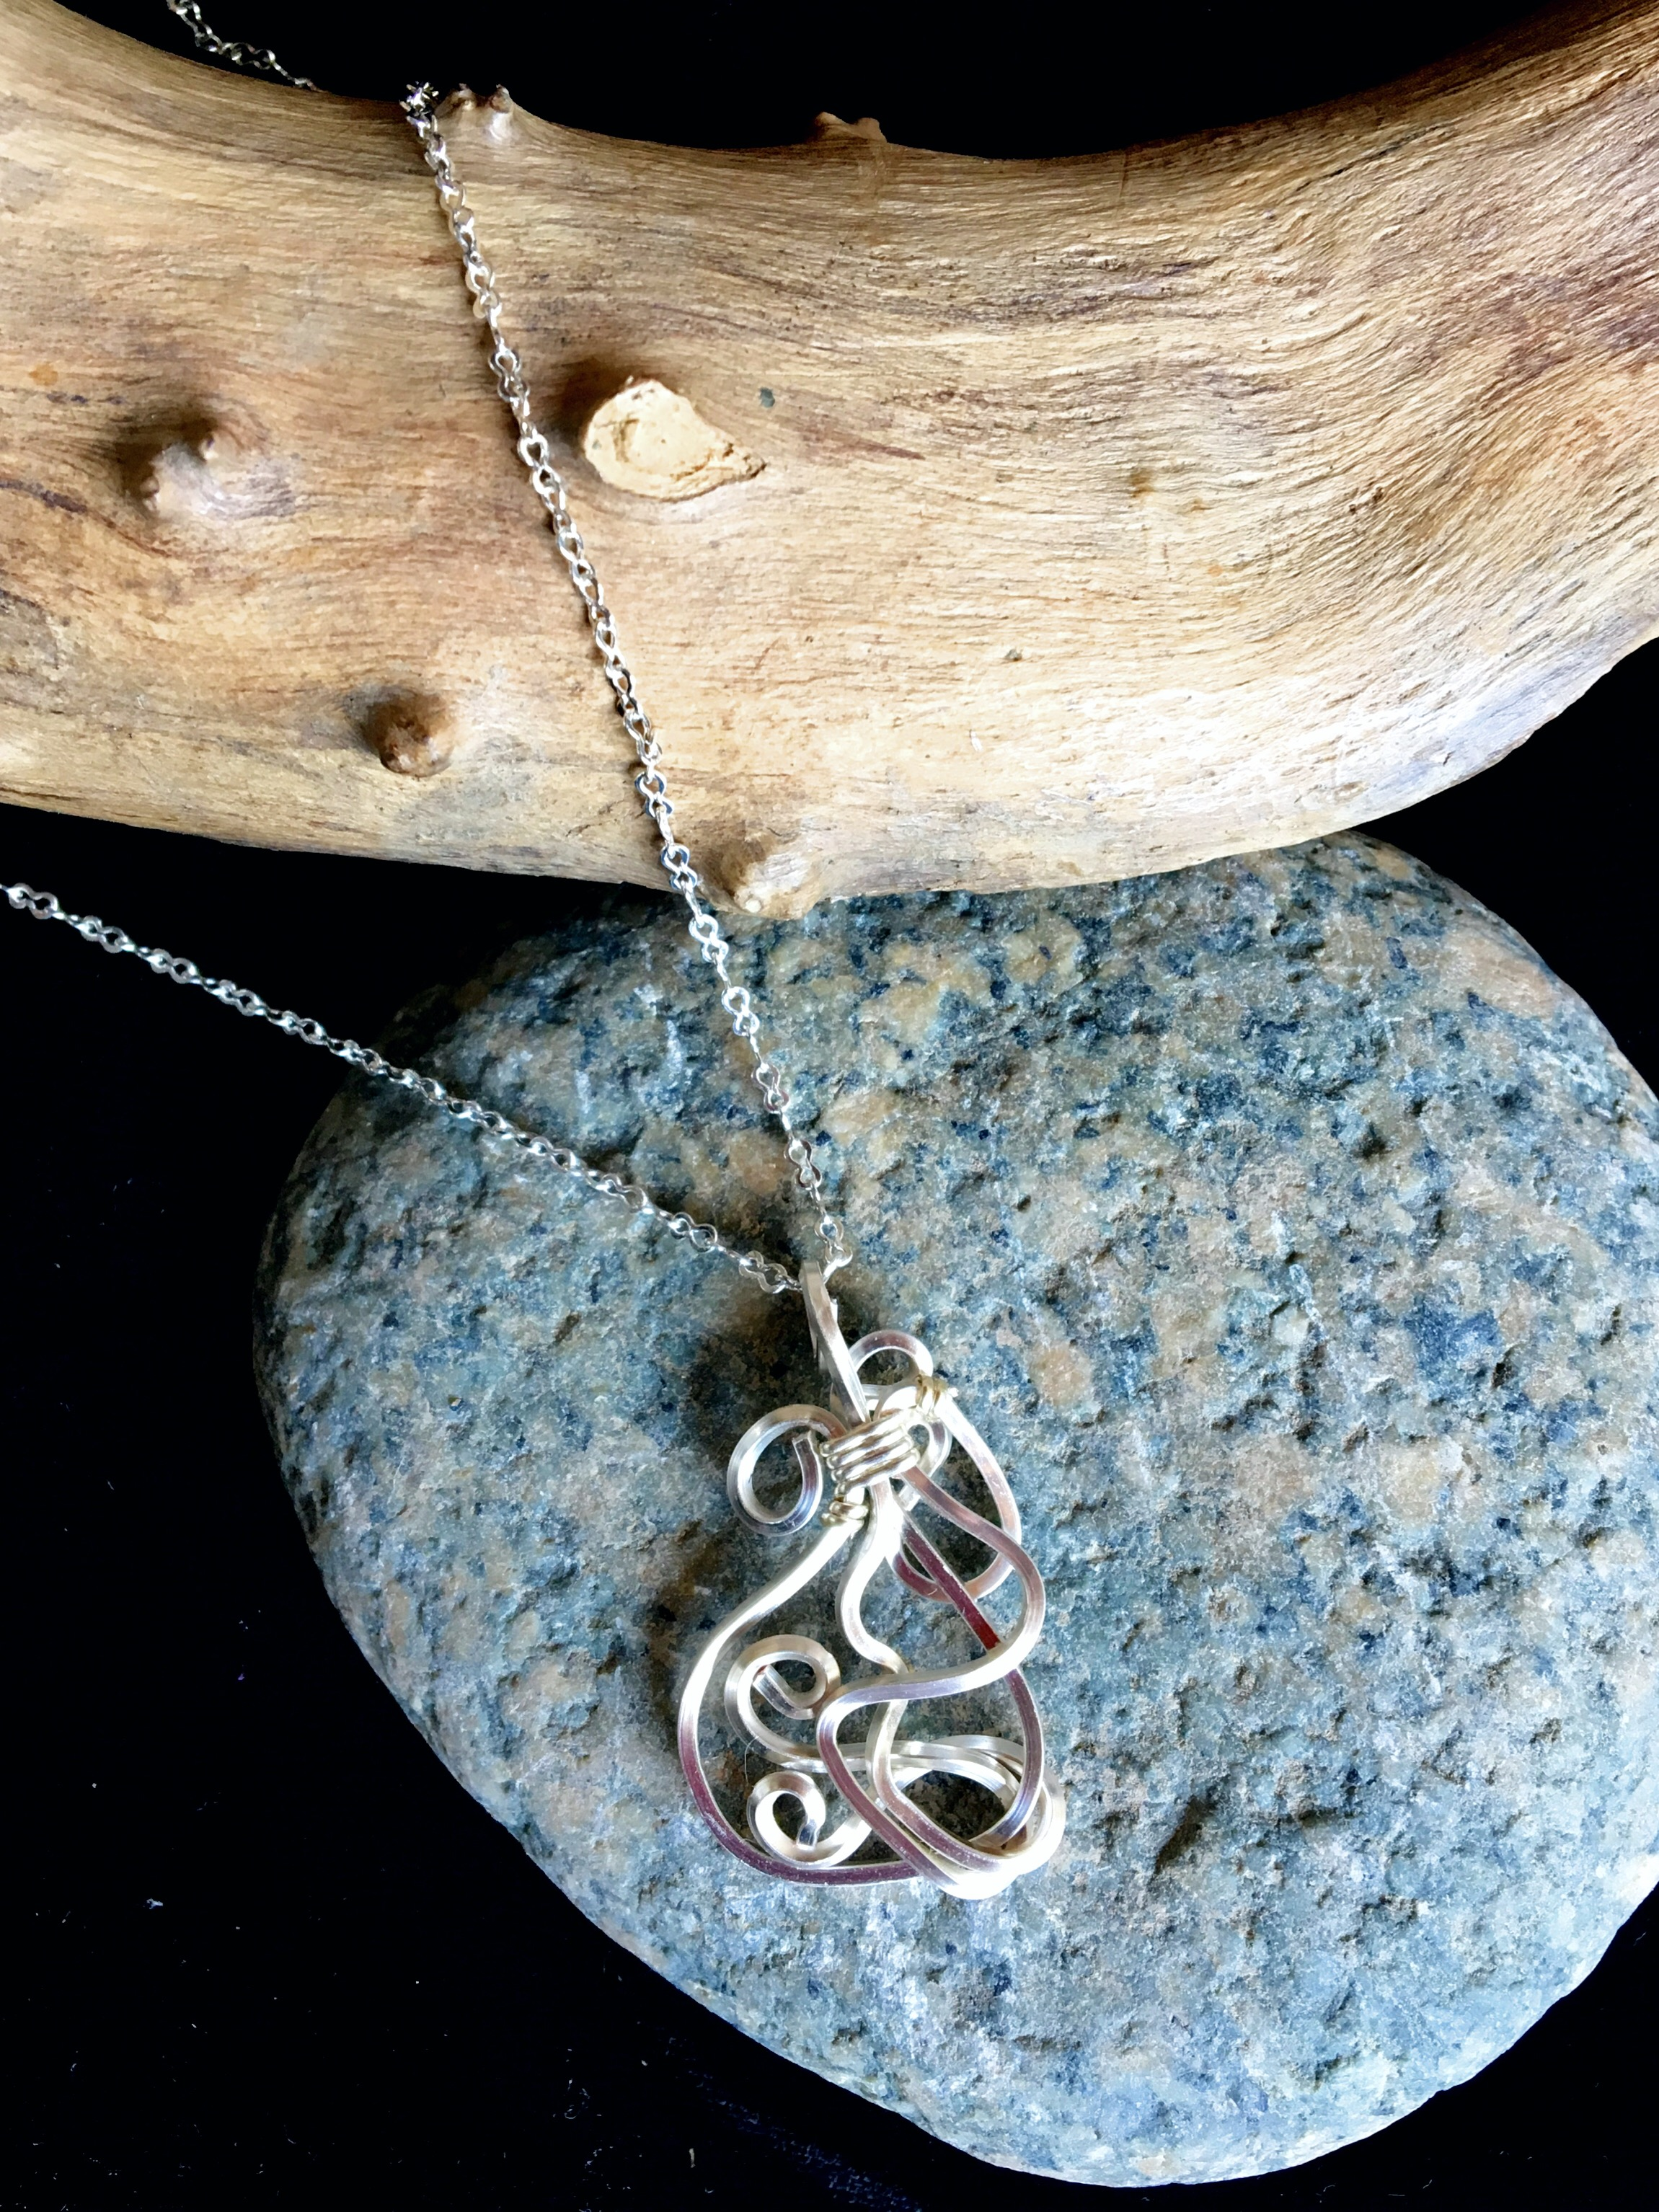 Candid Claire Necklace - Wavy - Silver Plated and Sterling